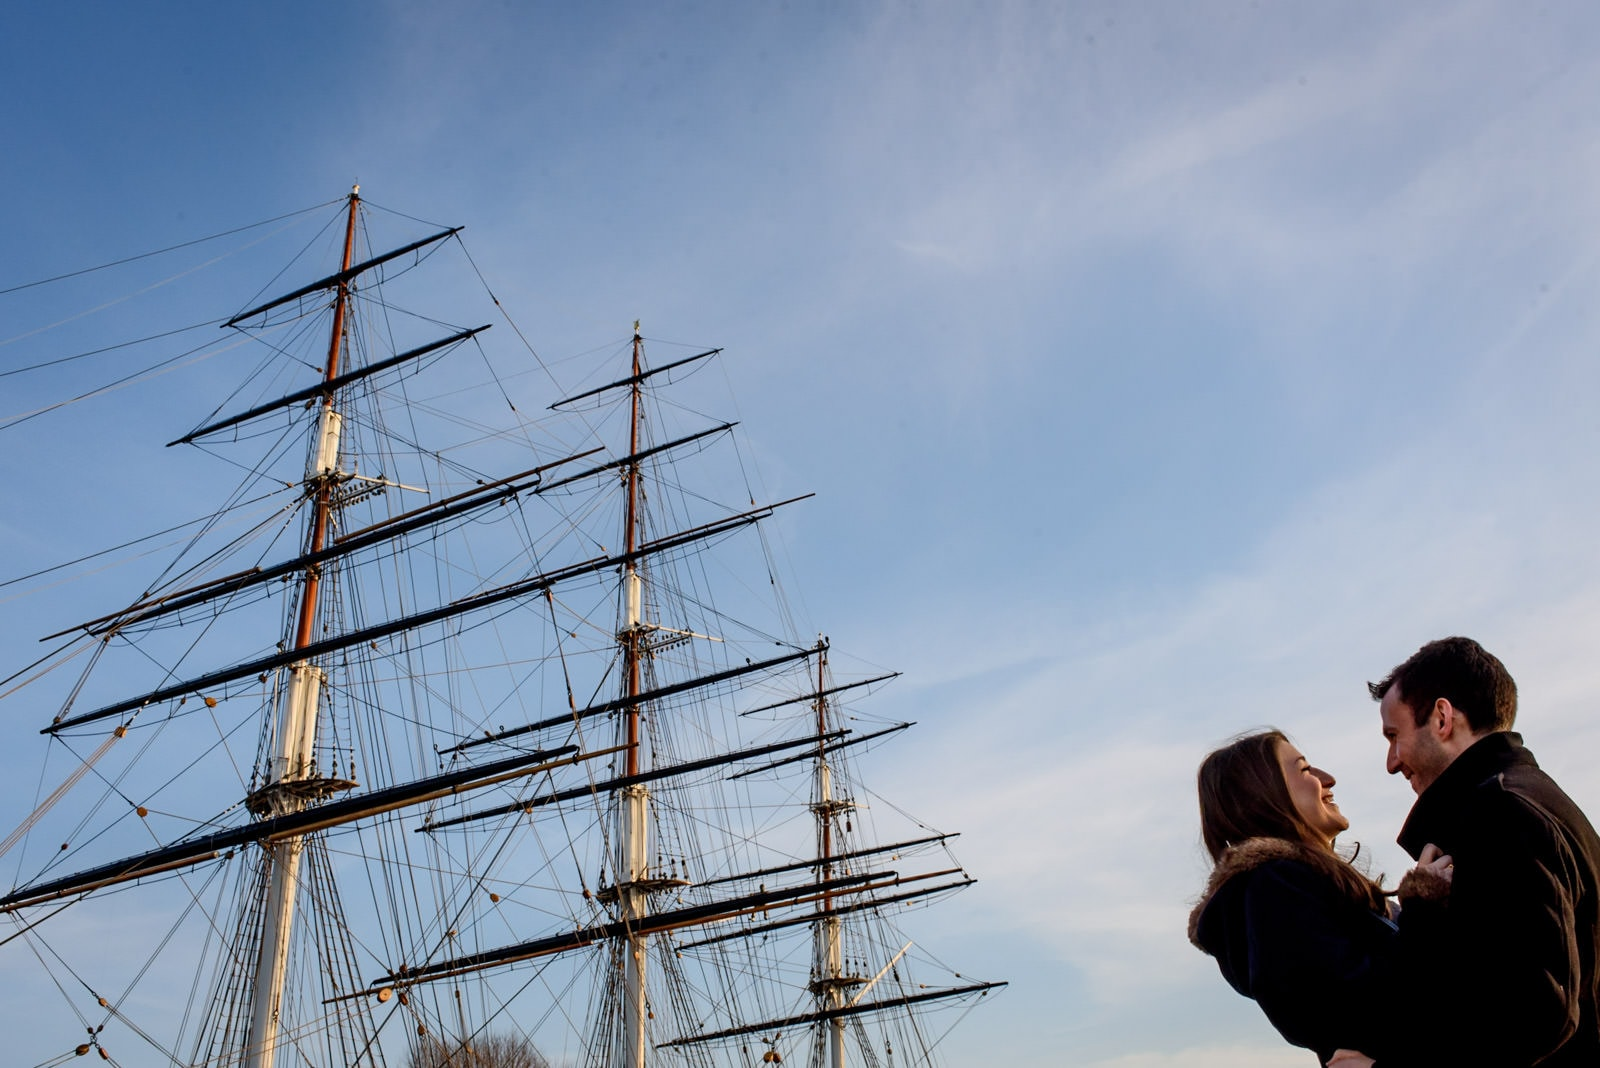 London engagement photos in front of the Cutty Sark against a blue sky